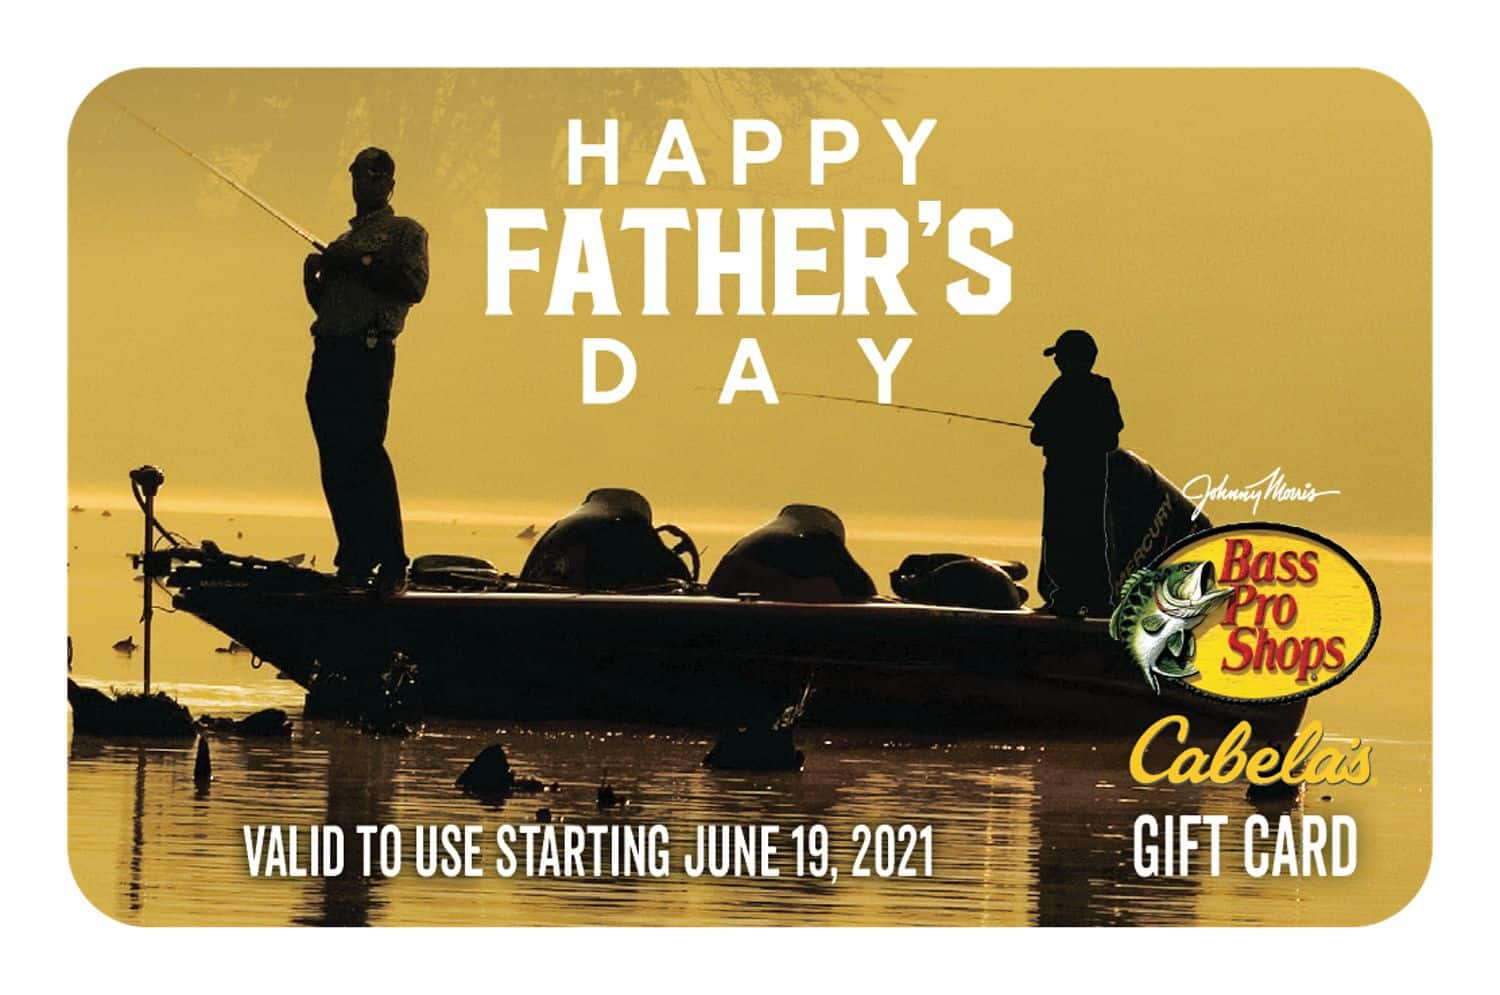 Bass Pro Shops and Cabela's Special Father's Day Gift Card - 10% Off - ($50 for $45 +FS) and more